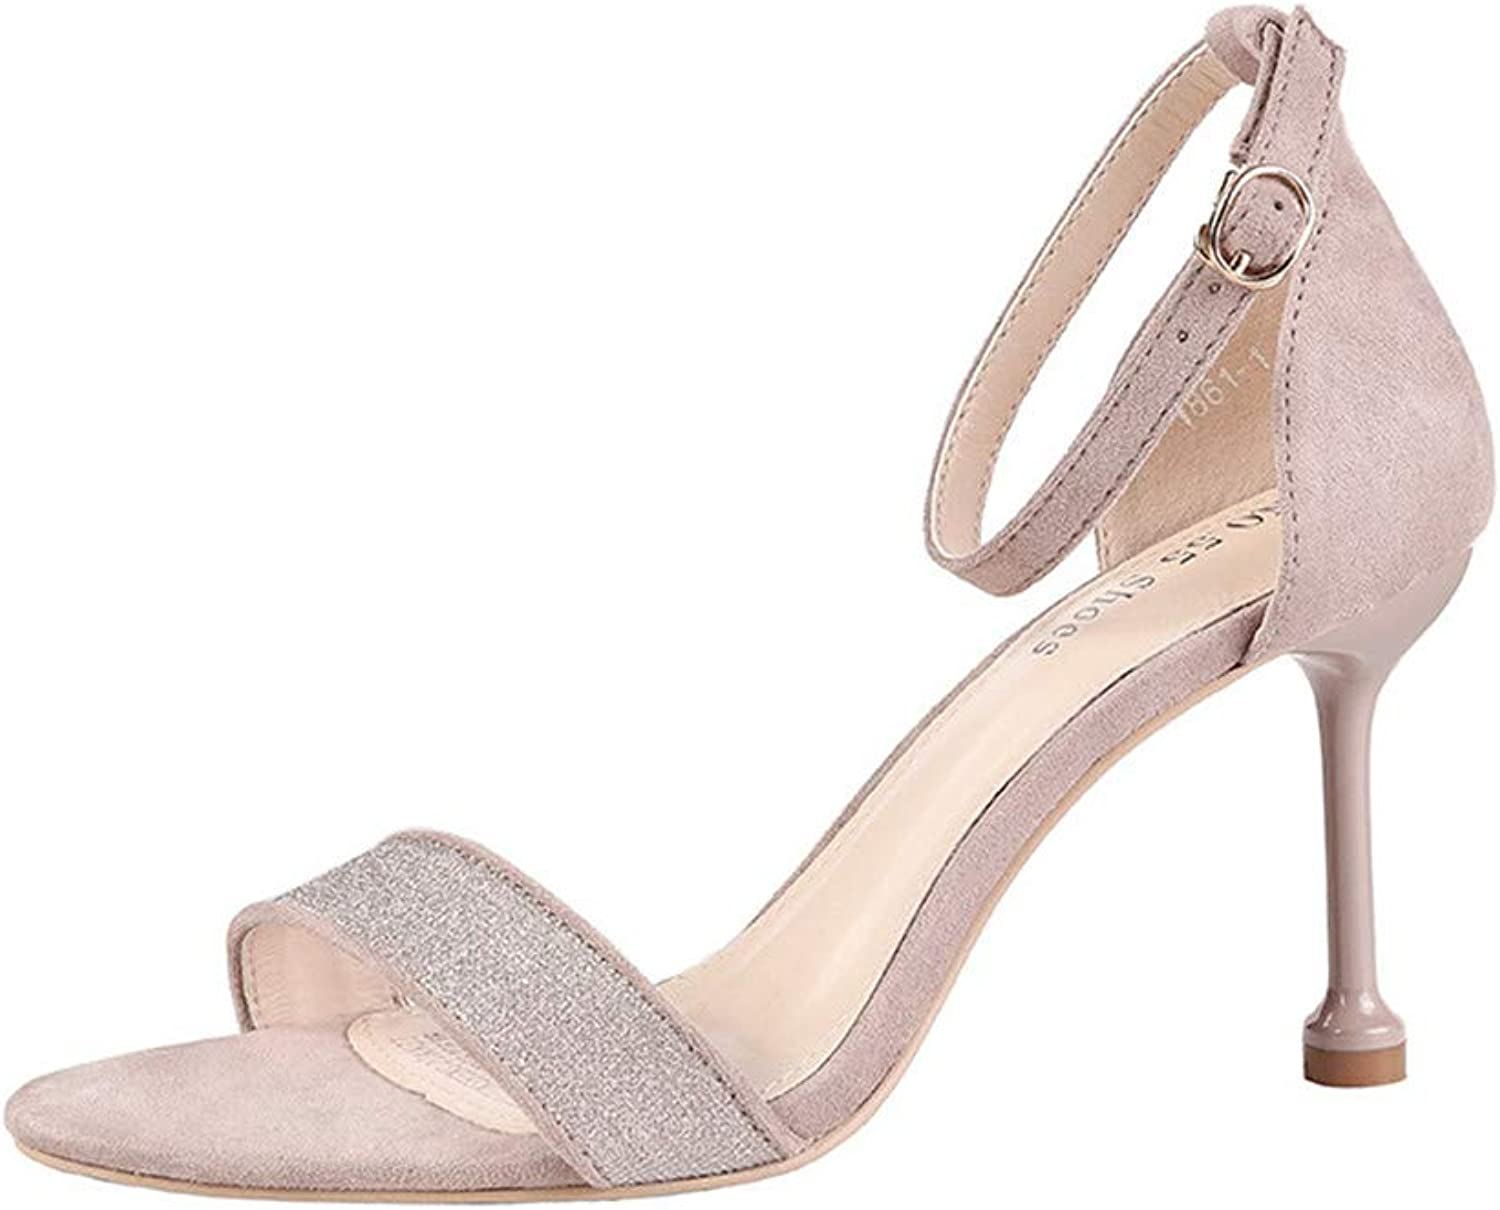 Fashion Toe-Baring High-Heeled Sandals Evening Dress Party with High-Heeled Women's shoes